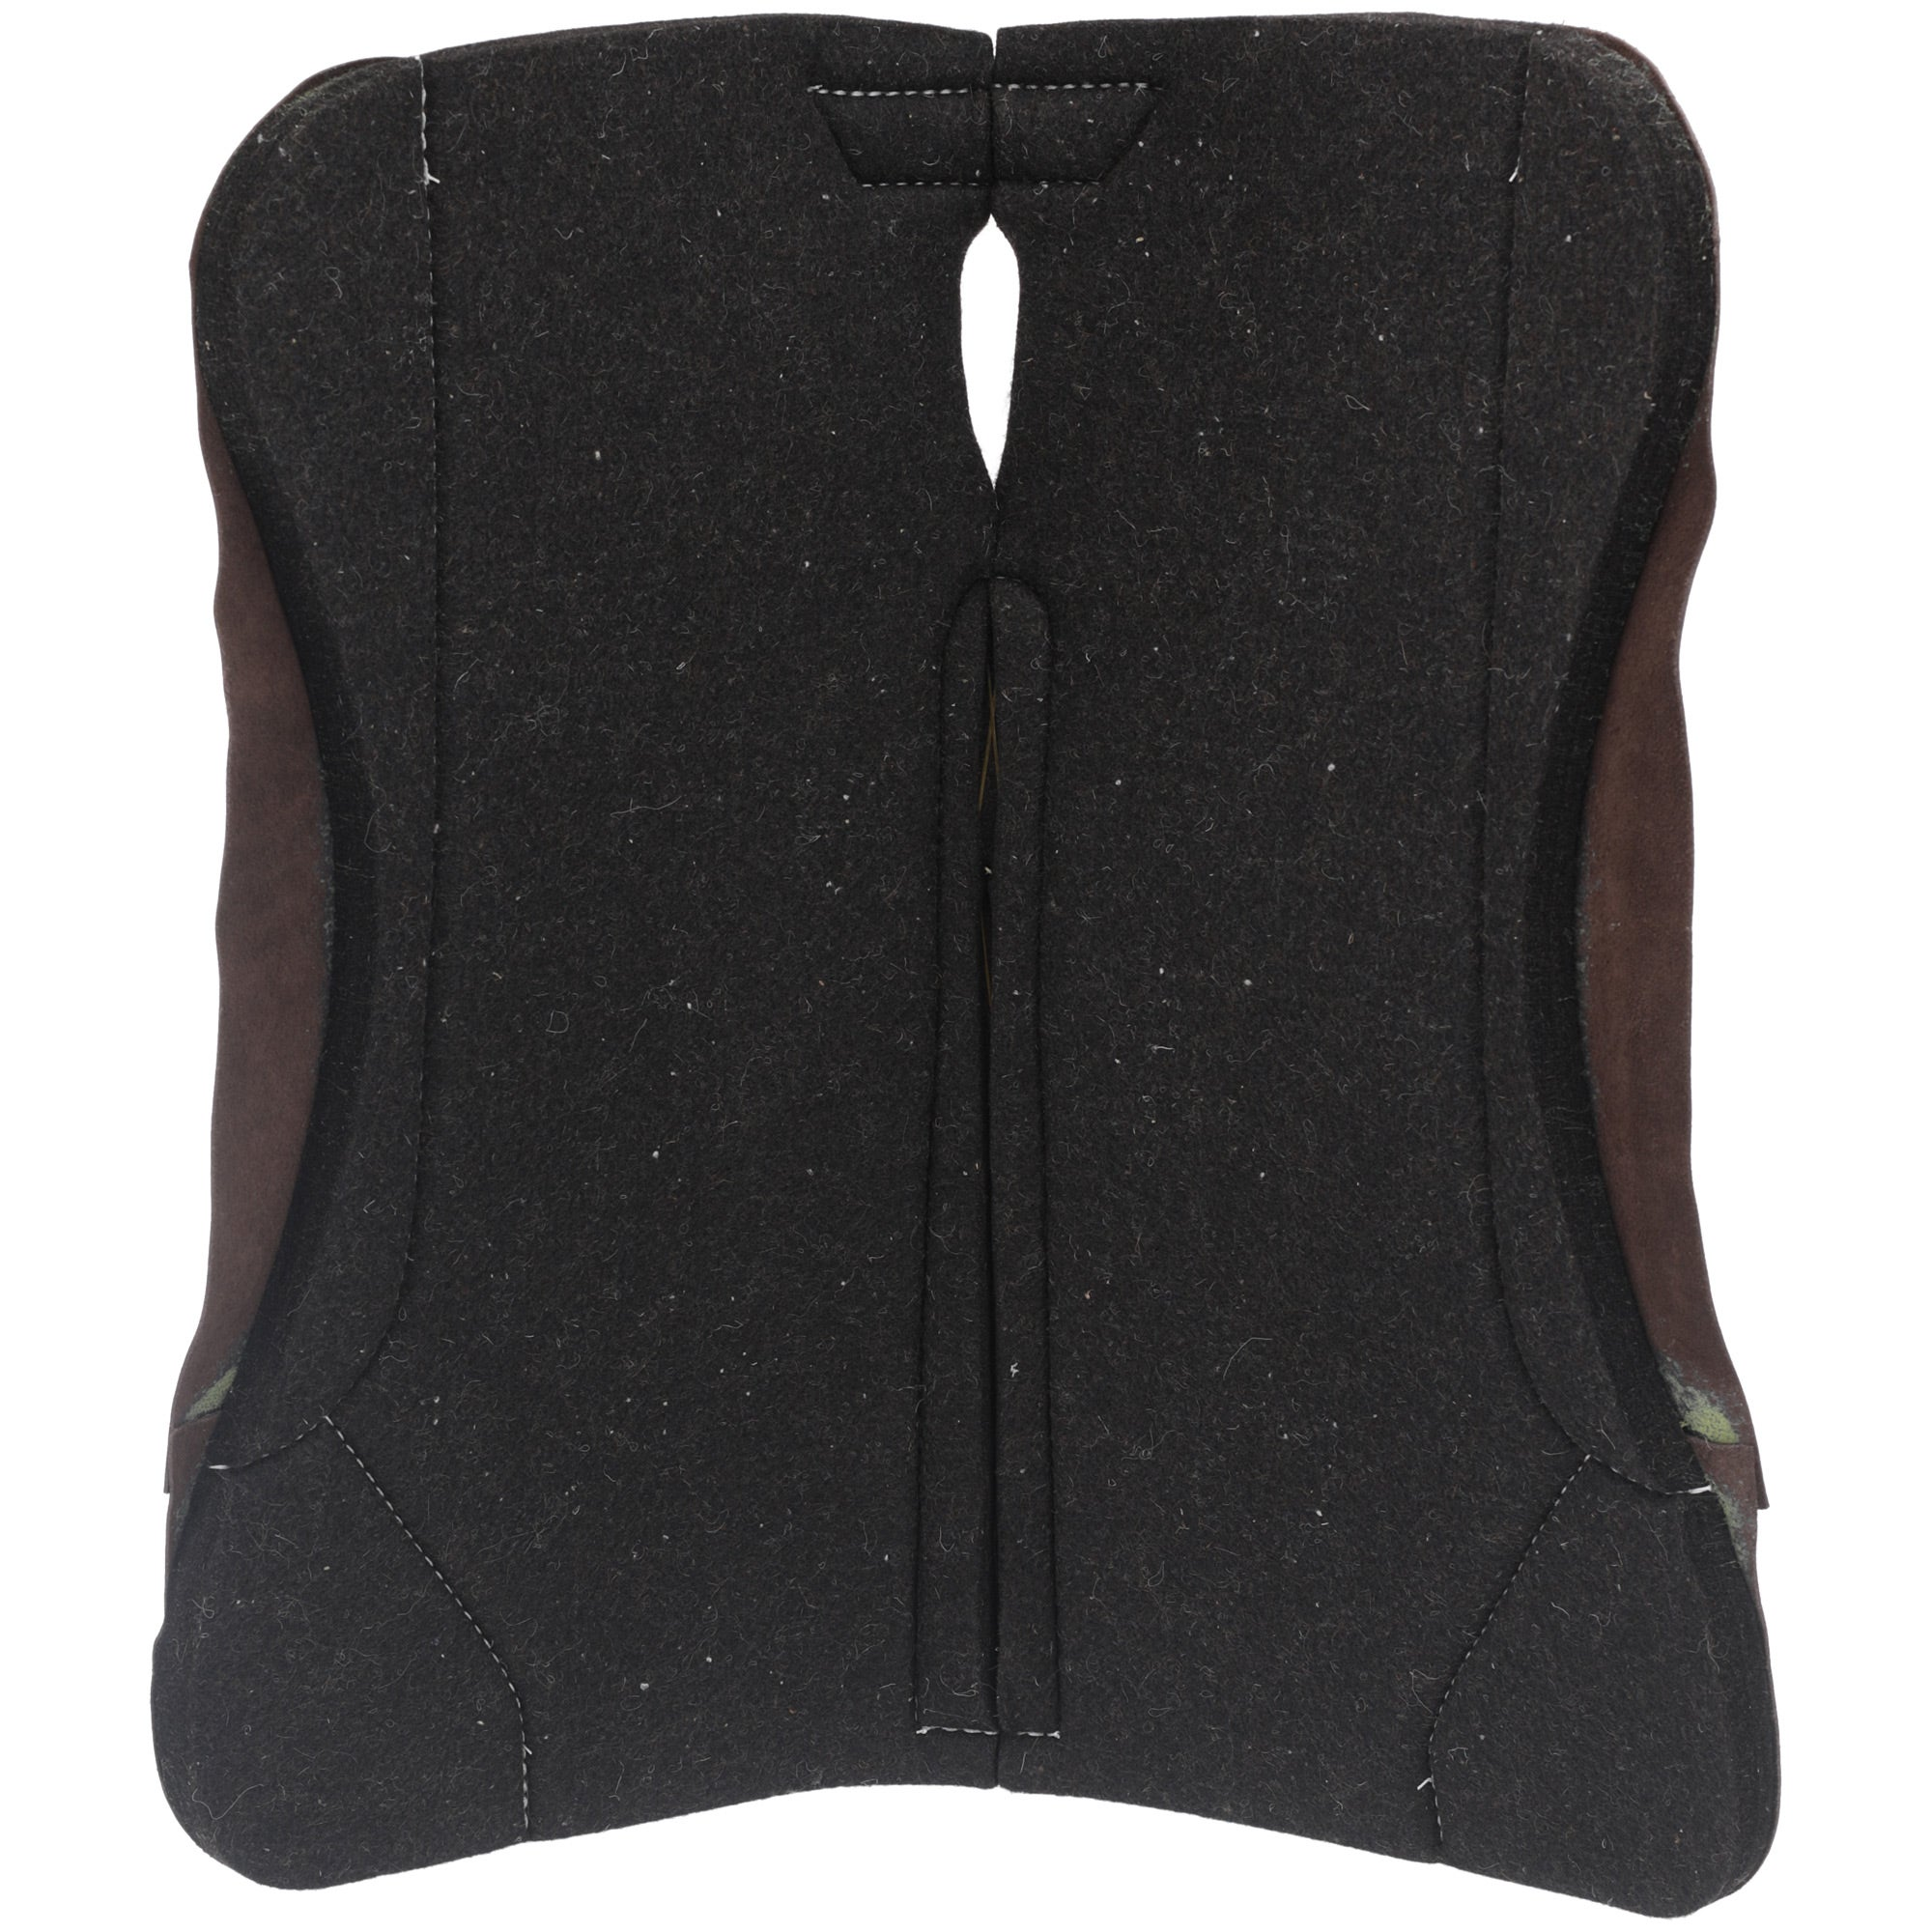 Riding Warehouse by Best Ever Felt Western Saddle Pad - Riding Warehouse